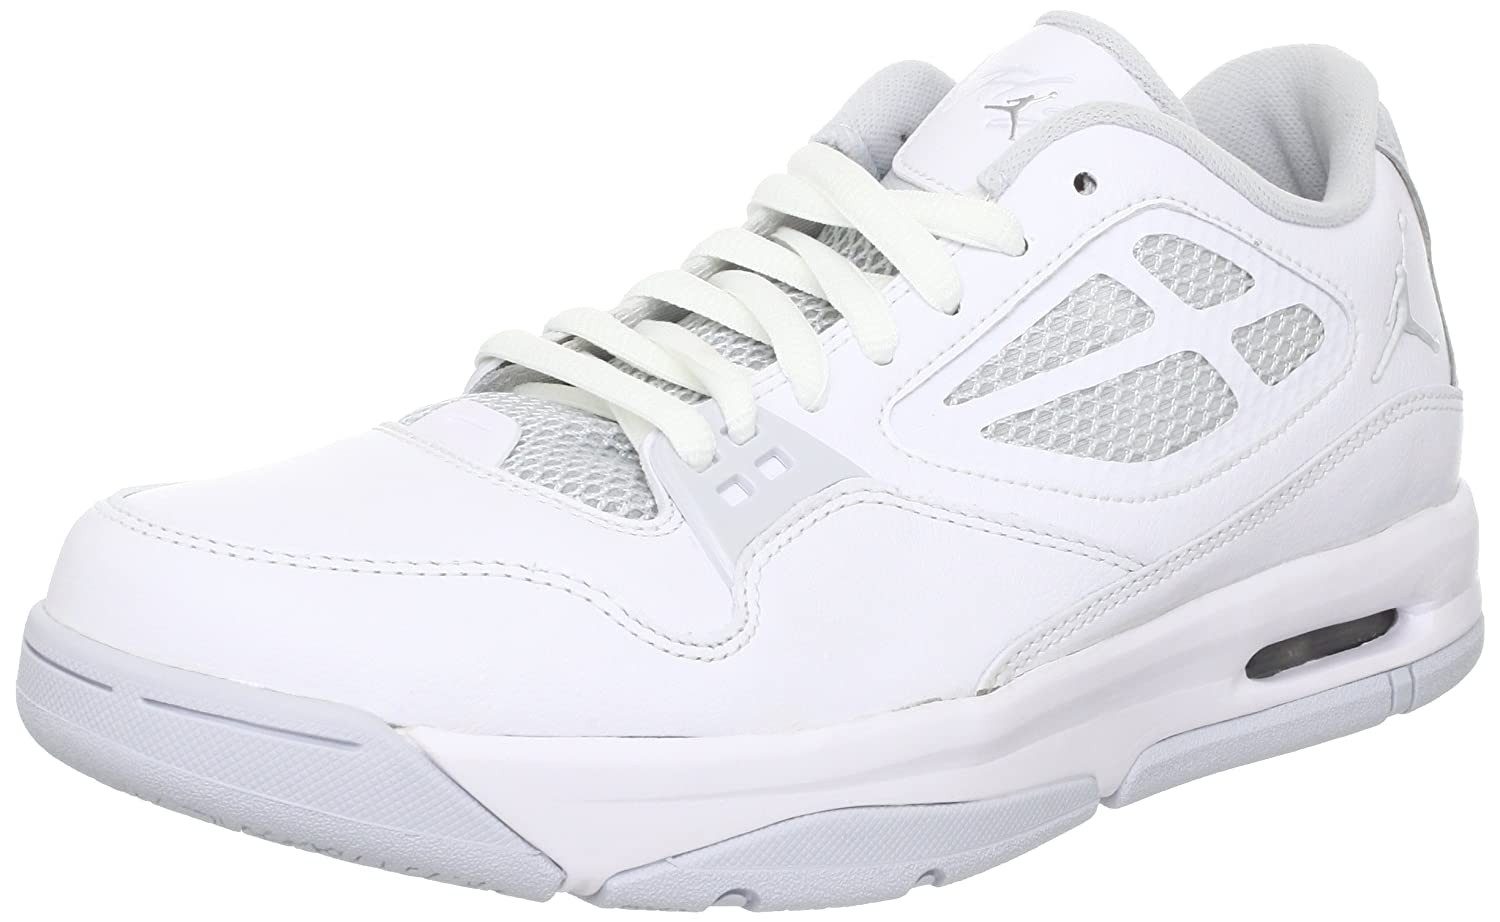 best website b3426 8f7aa Nike Men s Jordan Flight 23 RST Low Basketball Shoes 10 (White Pure  Platinum)  Buy Online at Low Prices in India - Amazon.in